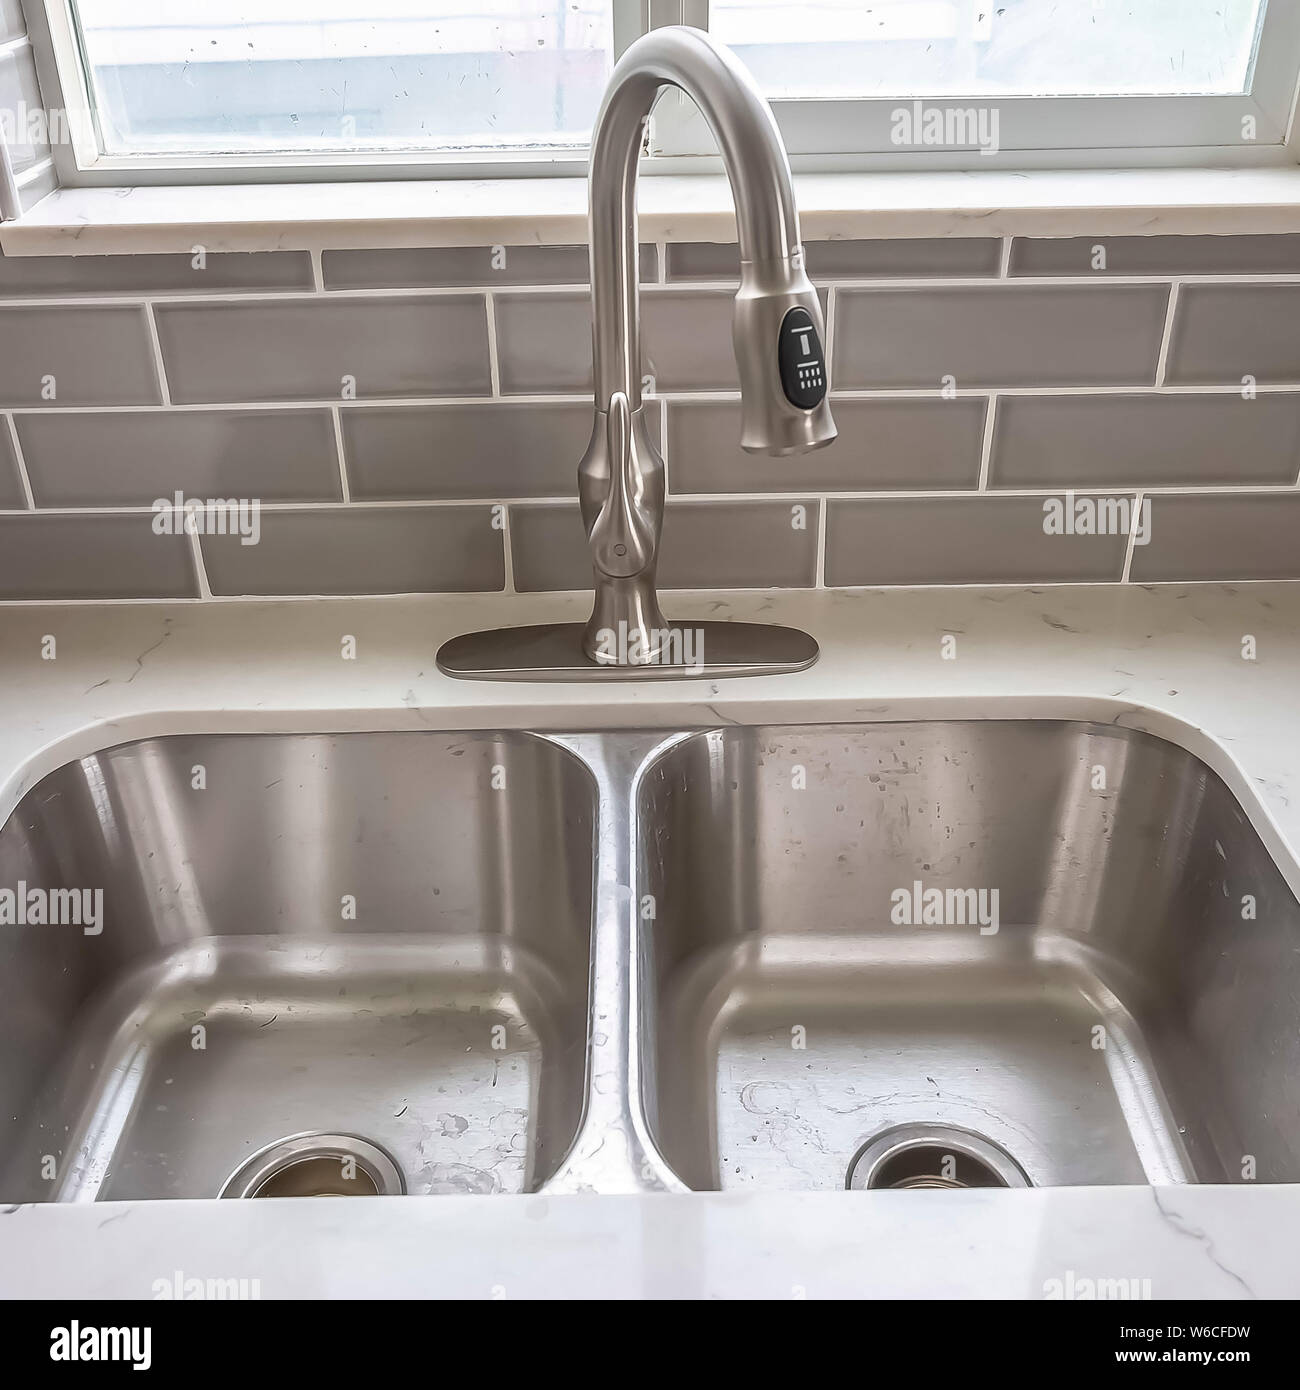 https www alamy com square frame double bowl stainless steel sink undermounted on the white kitchen countertop image262119029 html